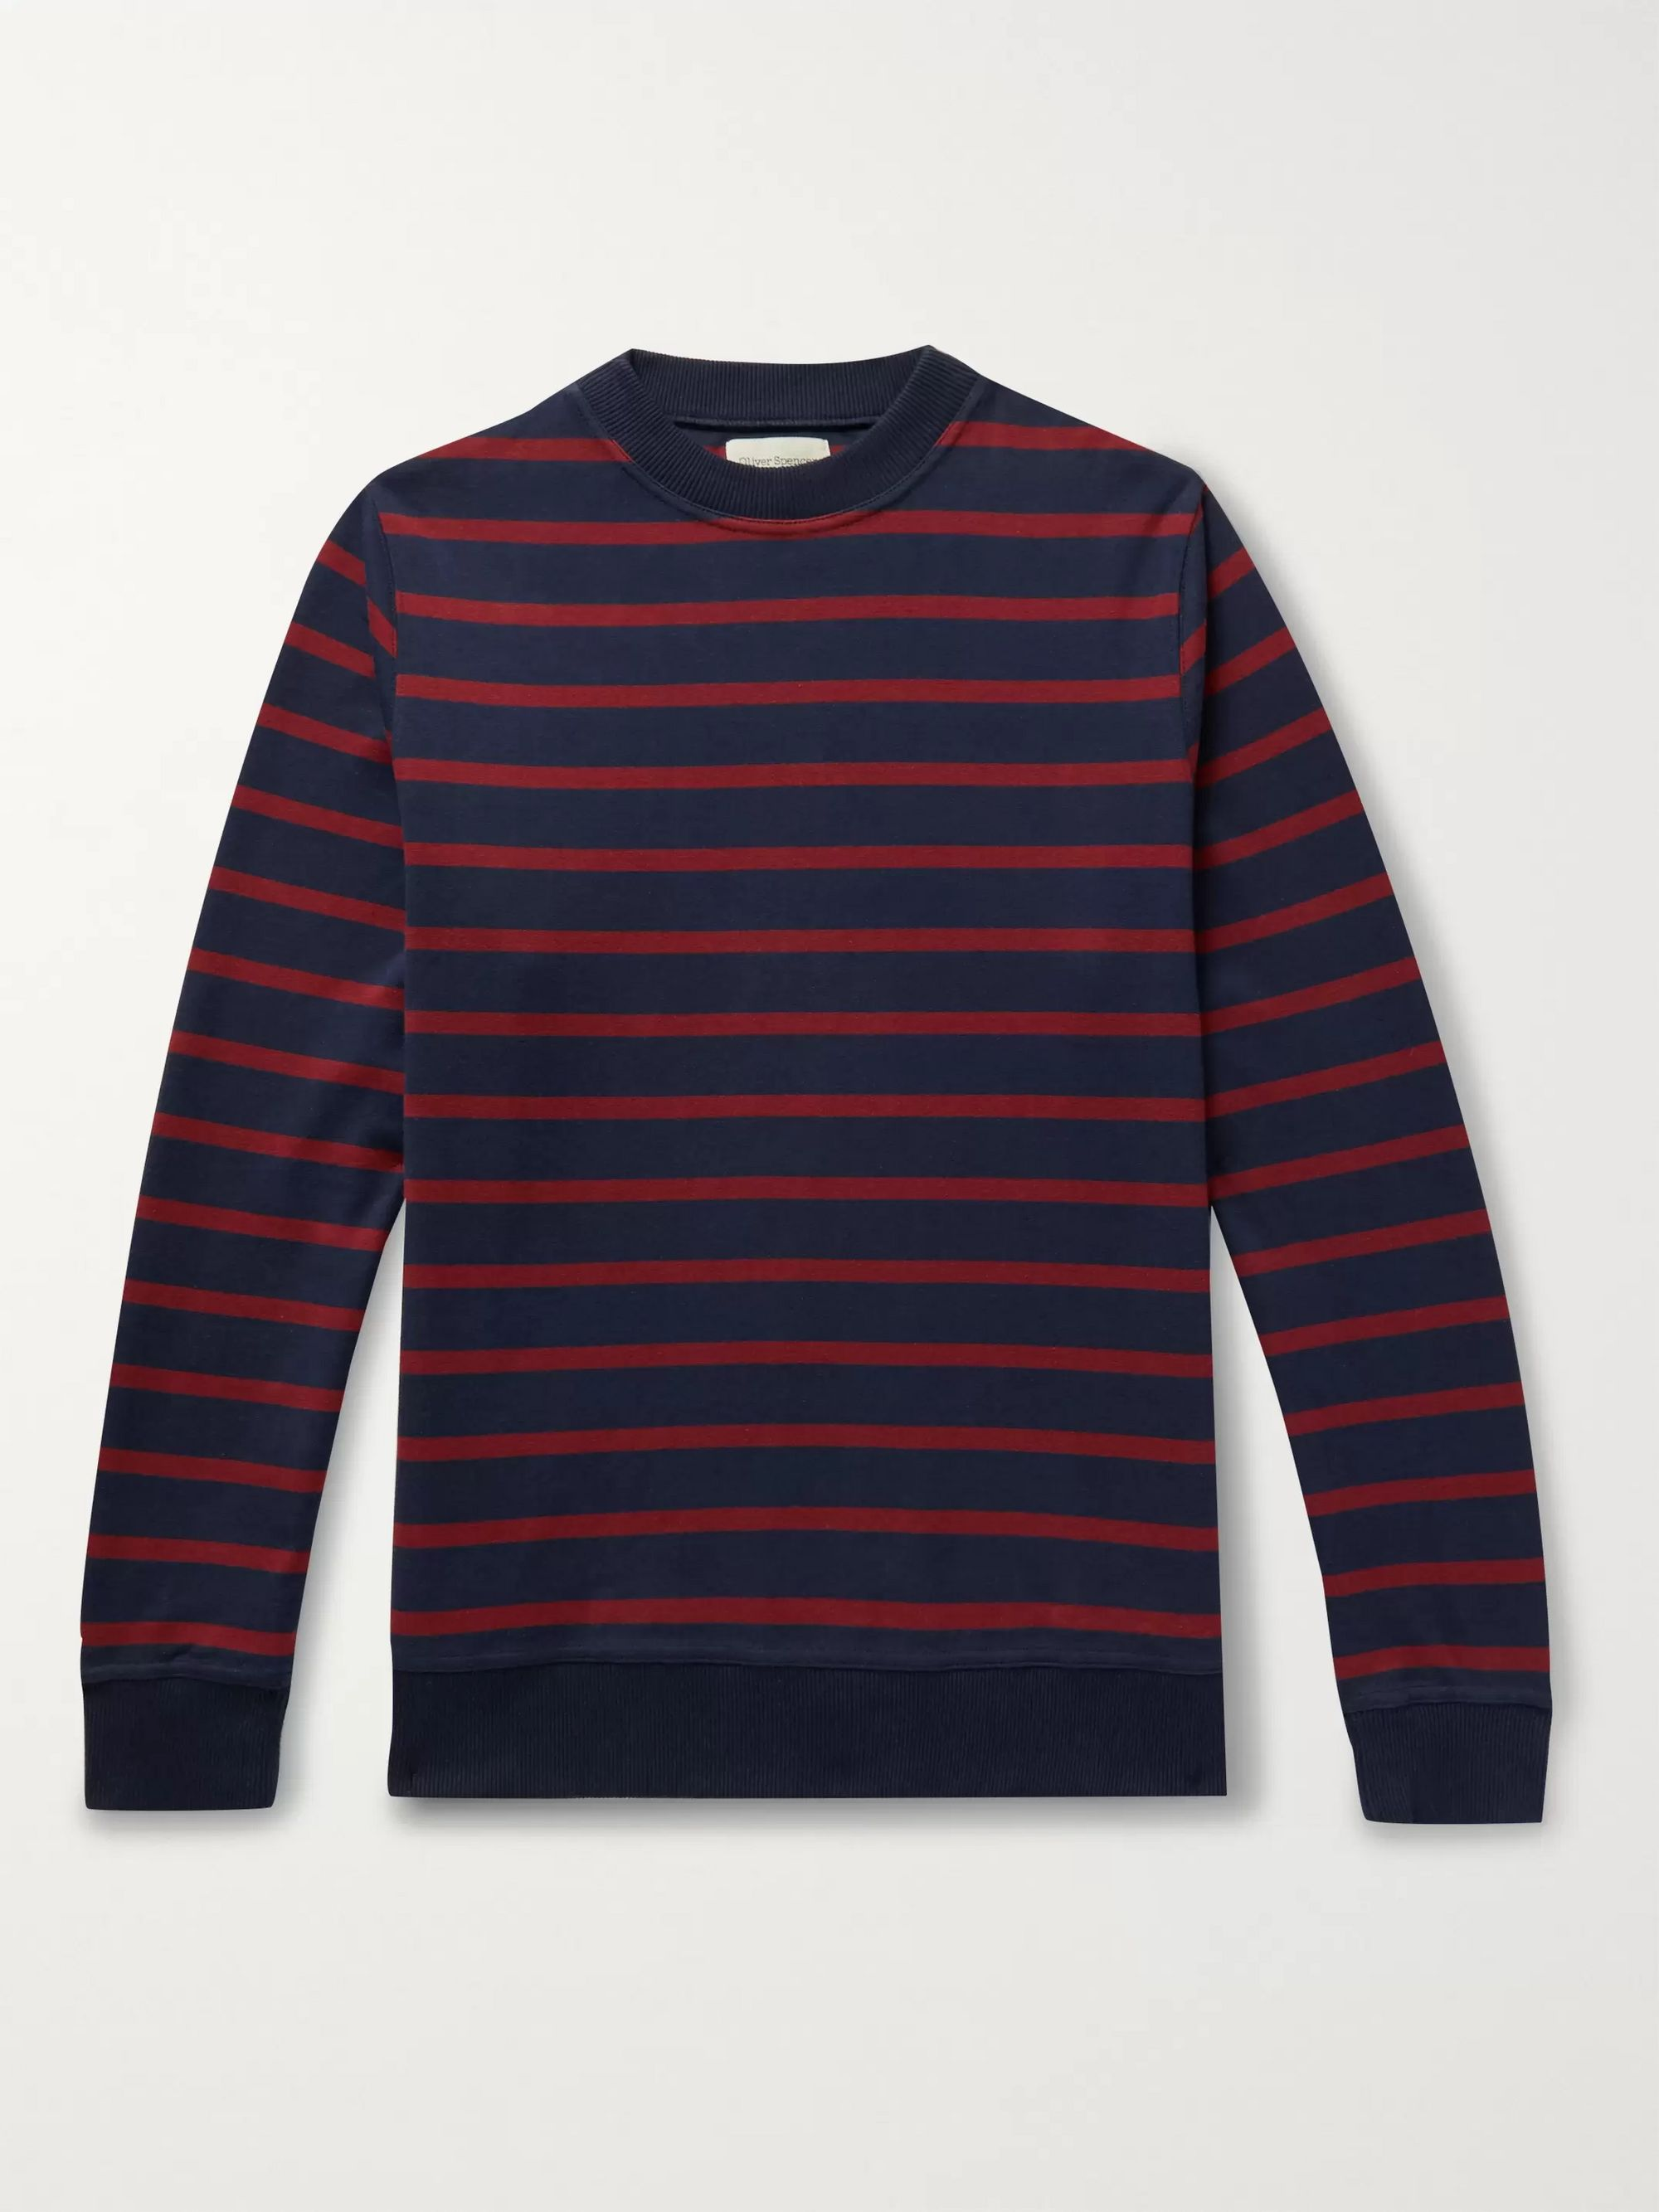 Robin Striped Organic Cotton Jersey Sweatshirt by Oliver Spencer